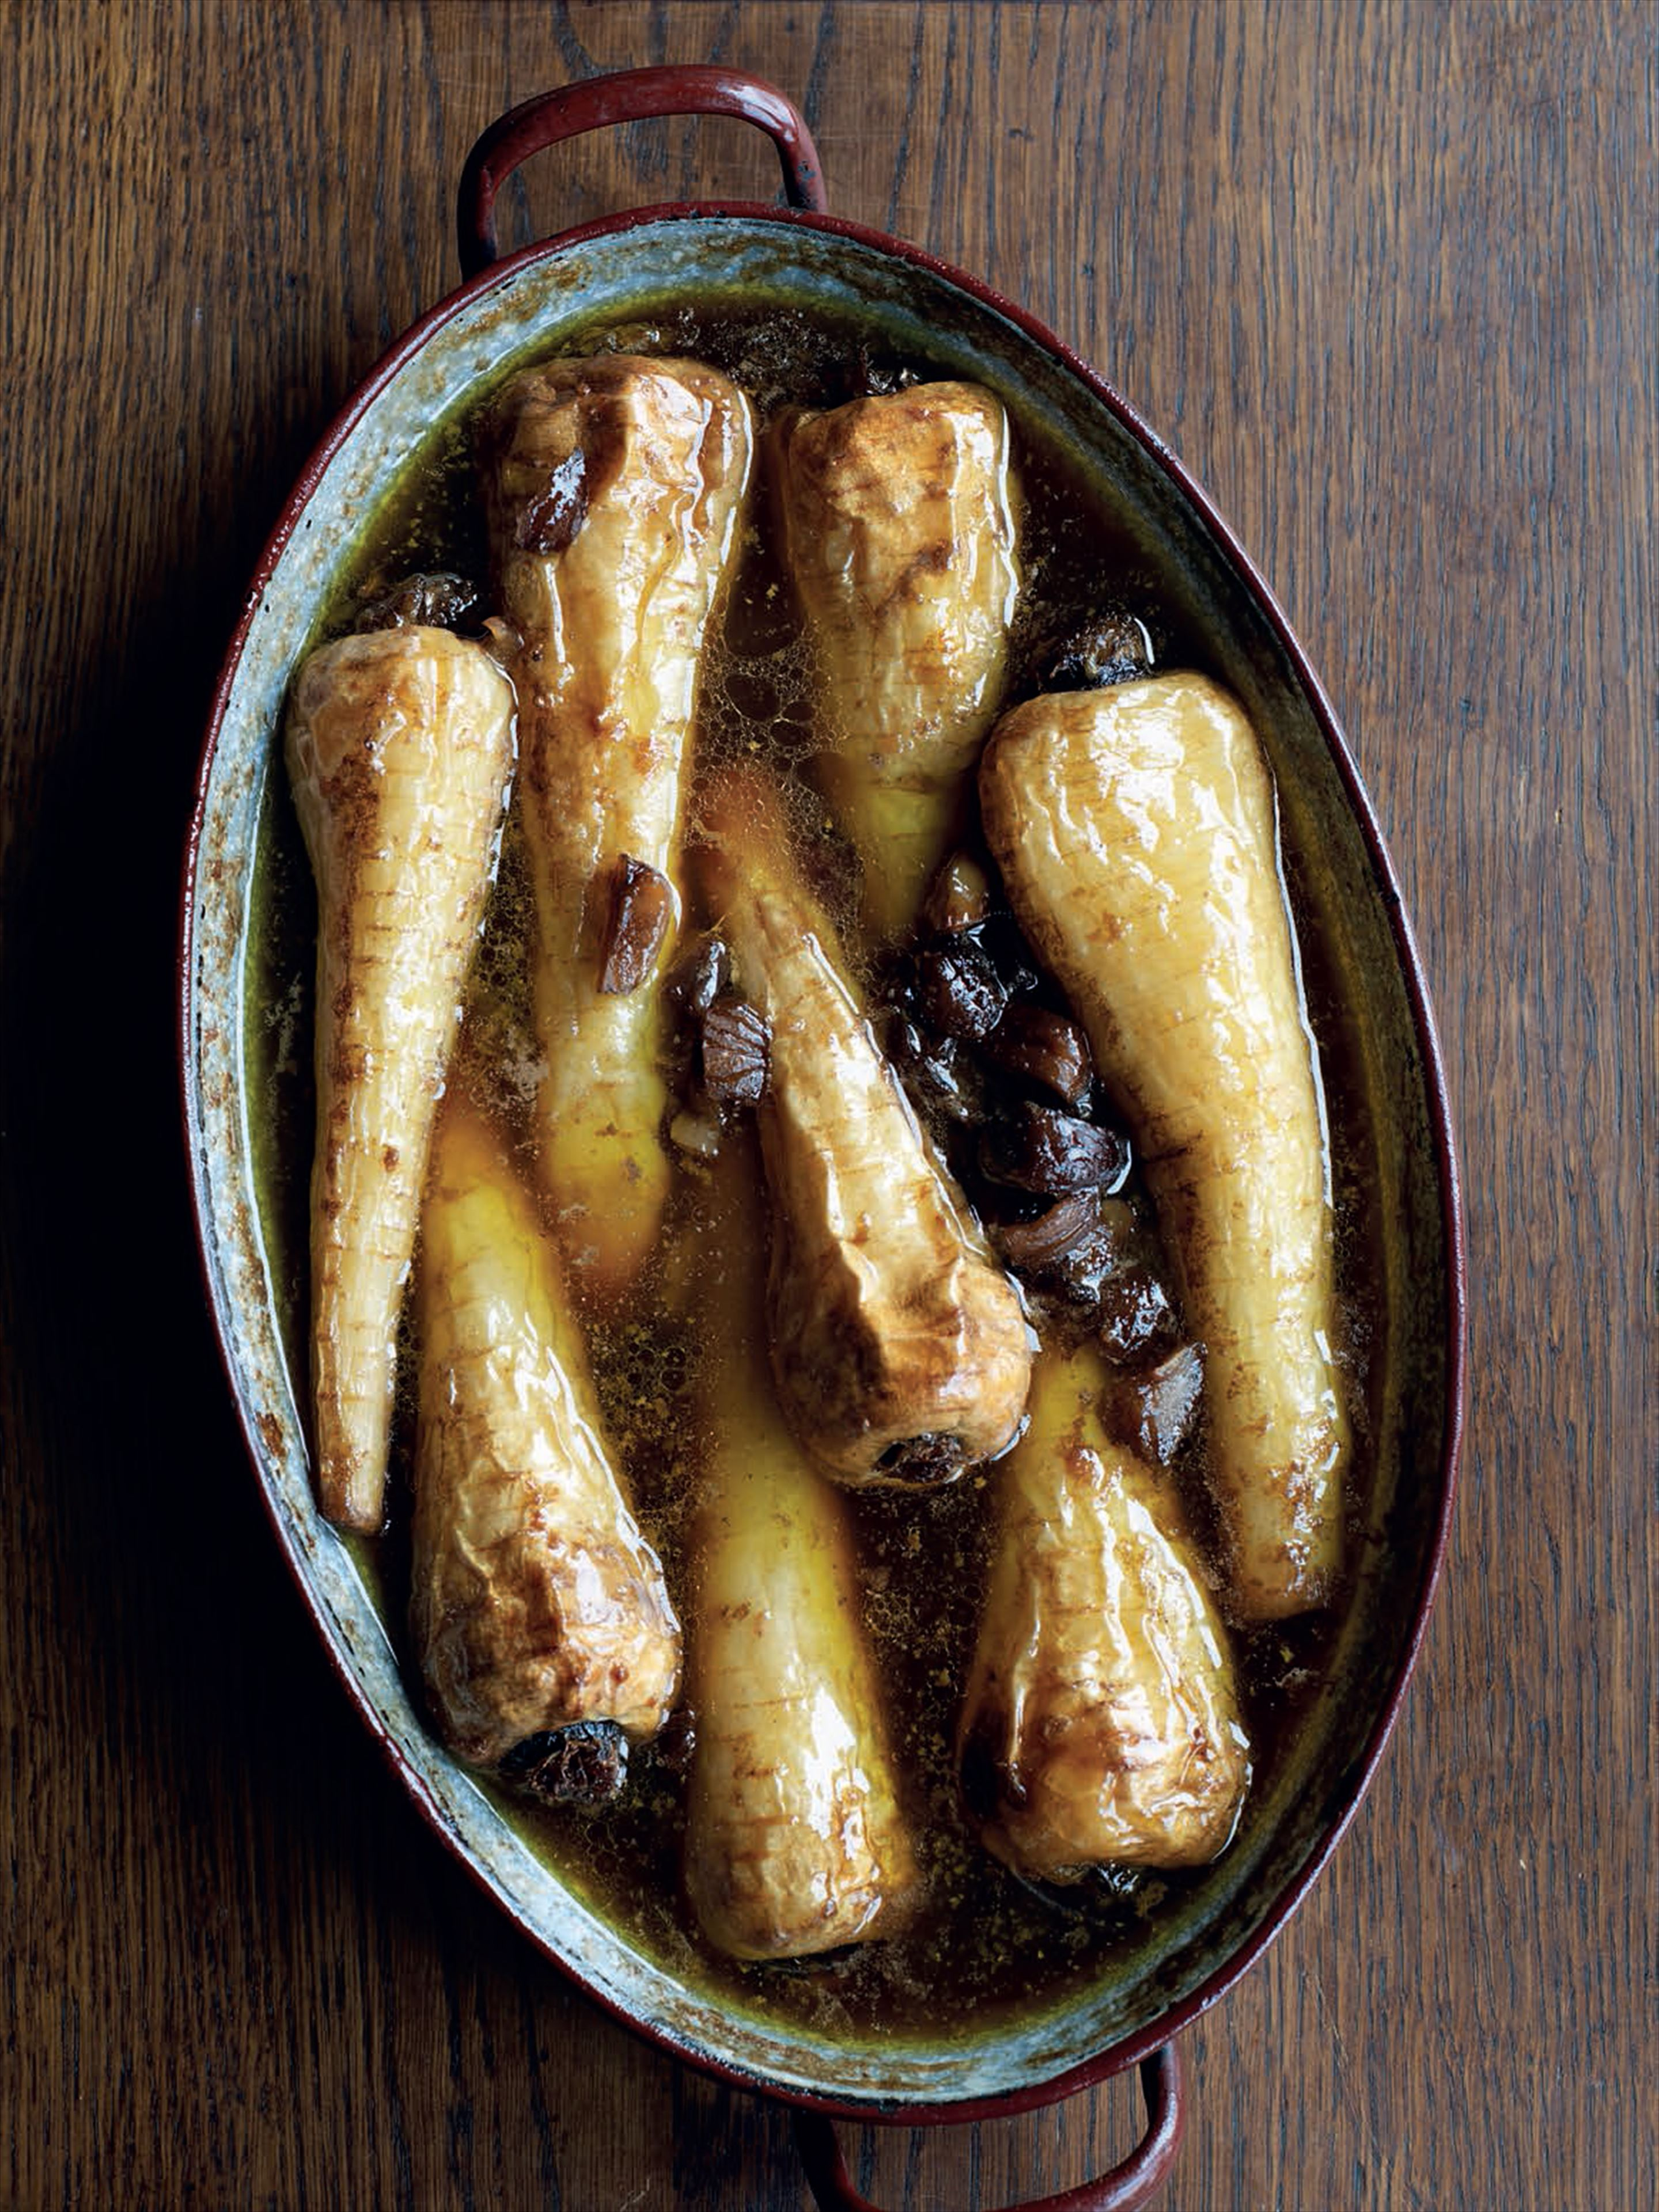 Slow-roast parsnips with sherry and chestnuts